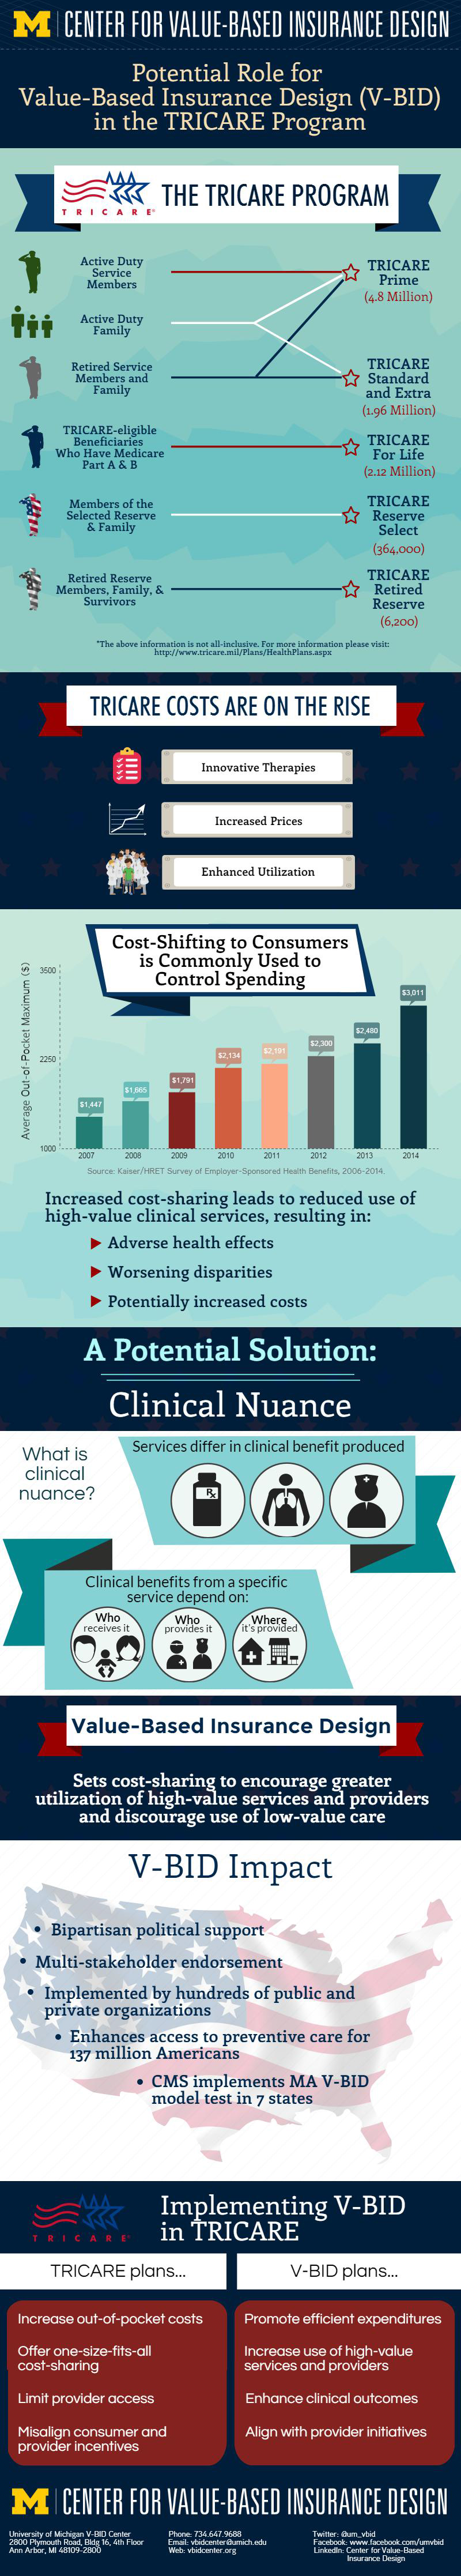 tricare program equips with vale-based insurance design plays a potential role